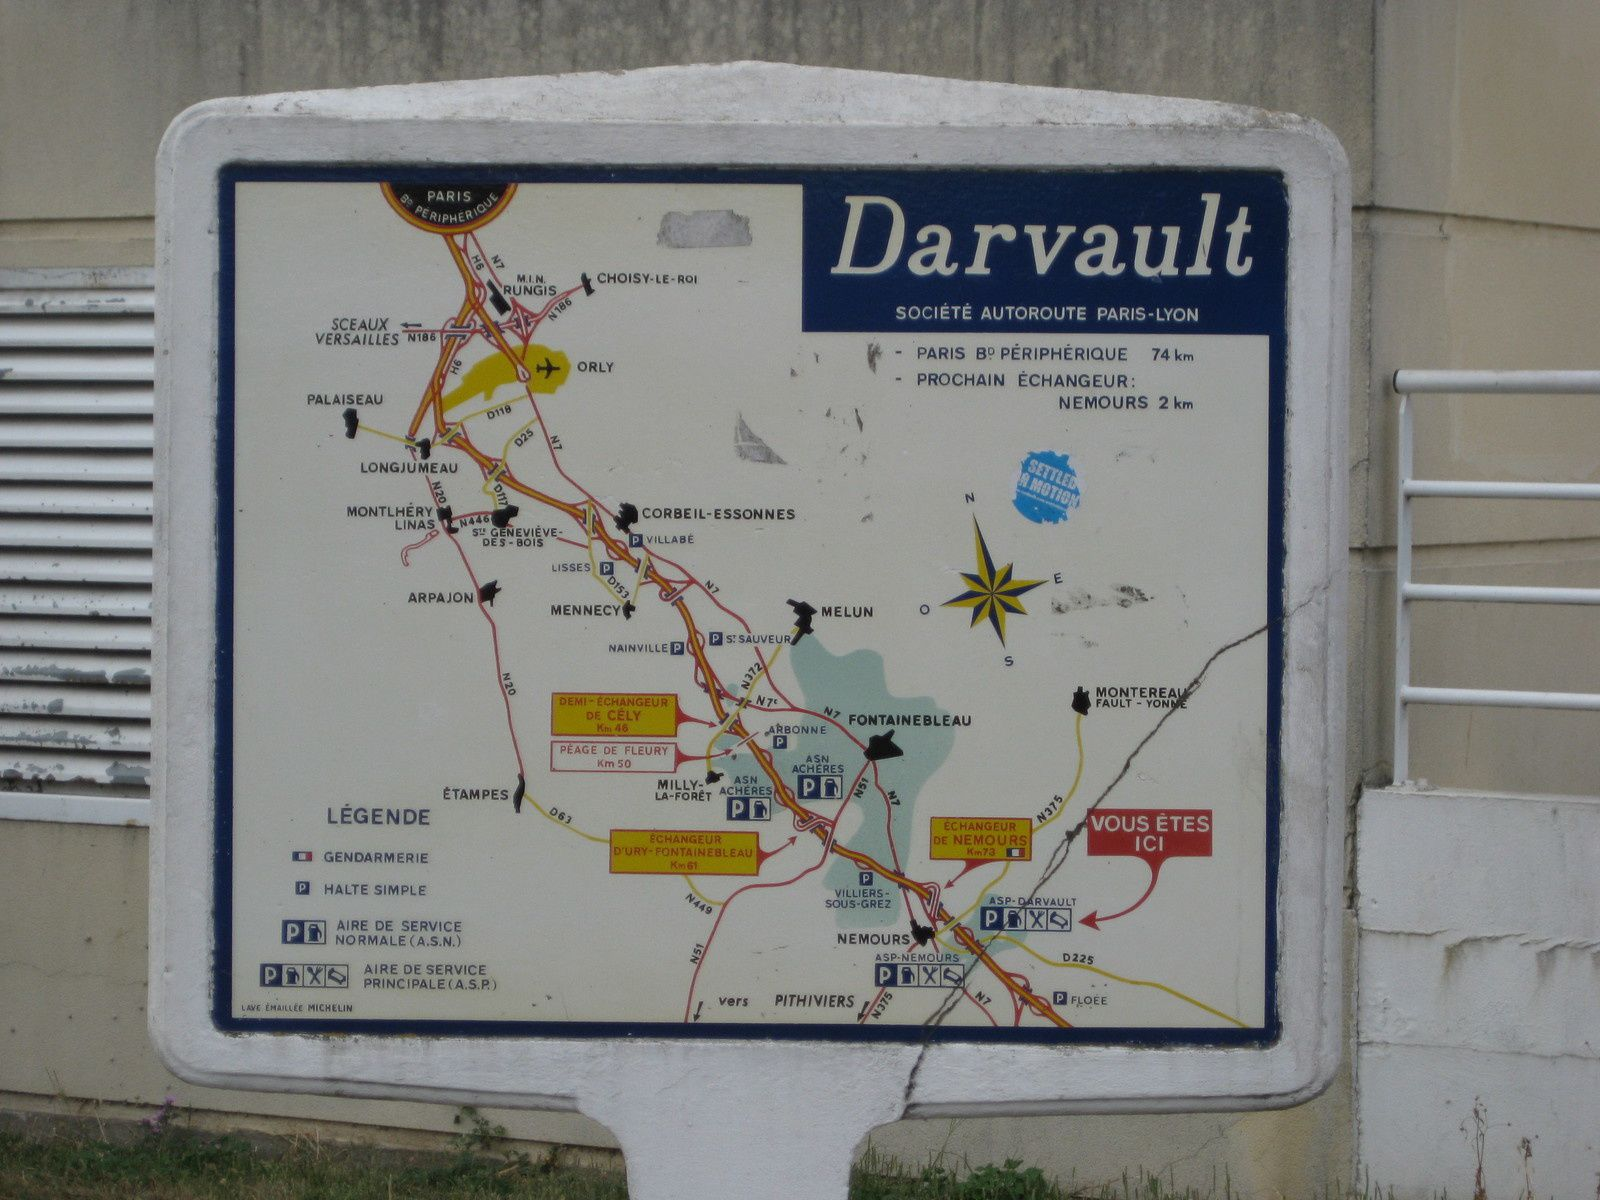 Enameled lava plate on concrete substrate - A6 Darvault / Company motorway Paris -Lyon